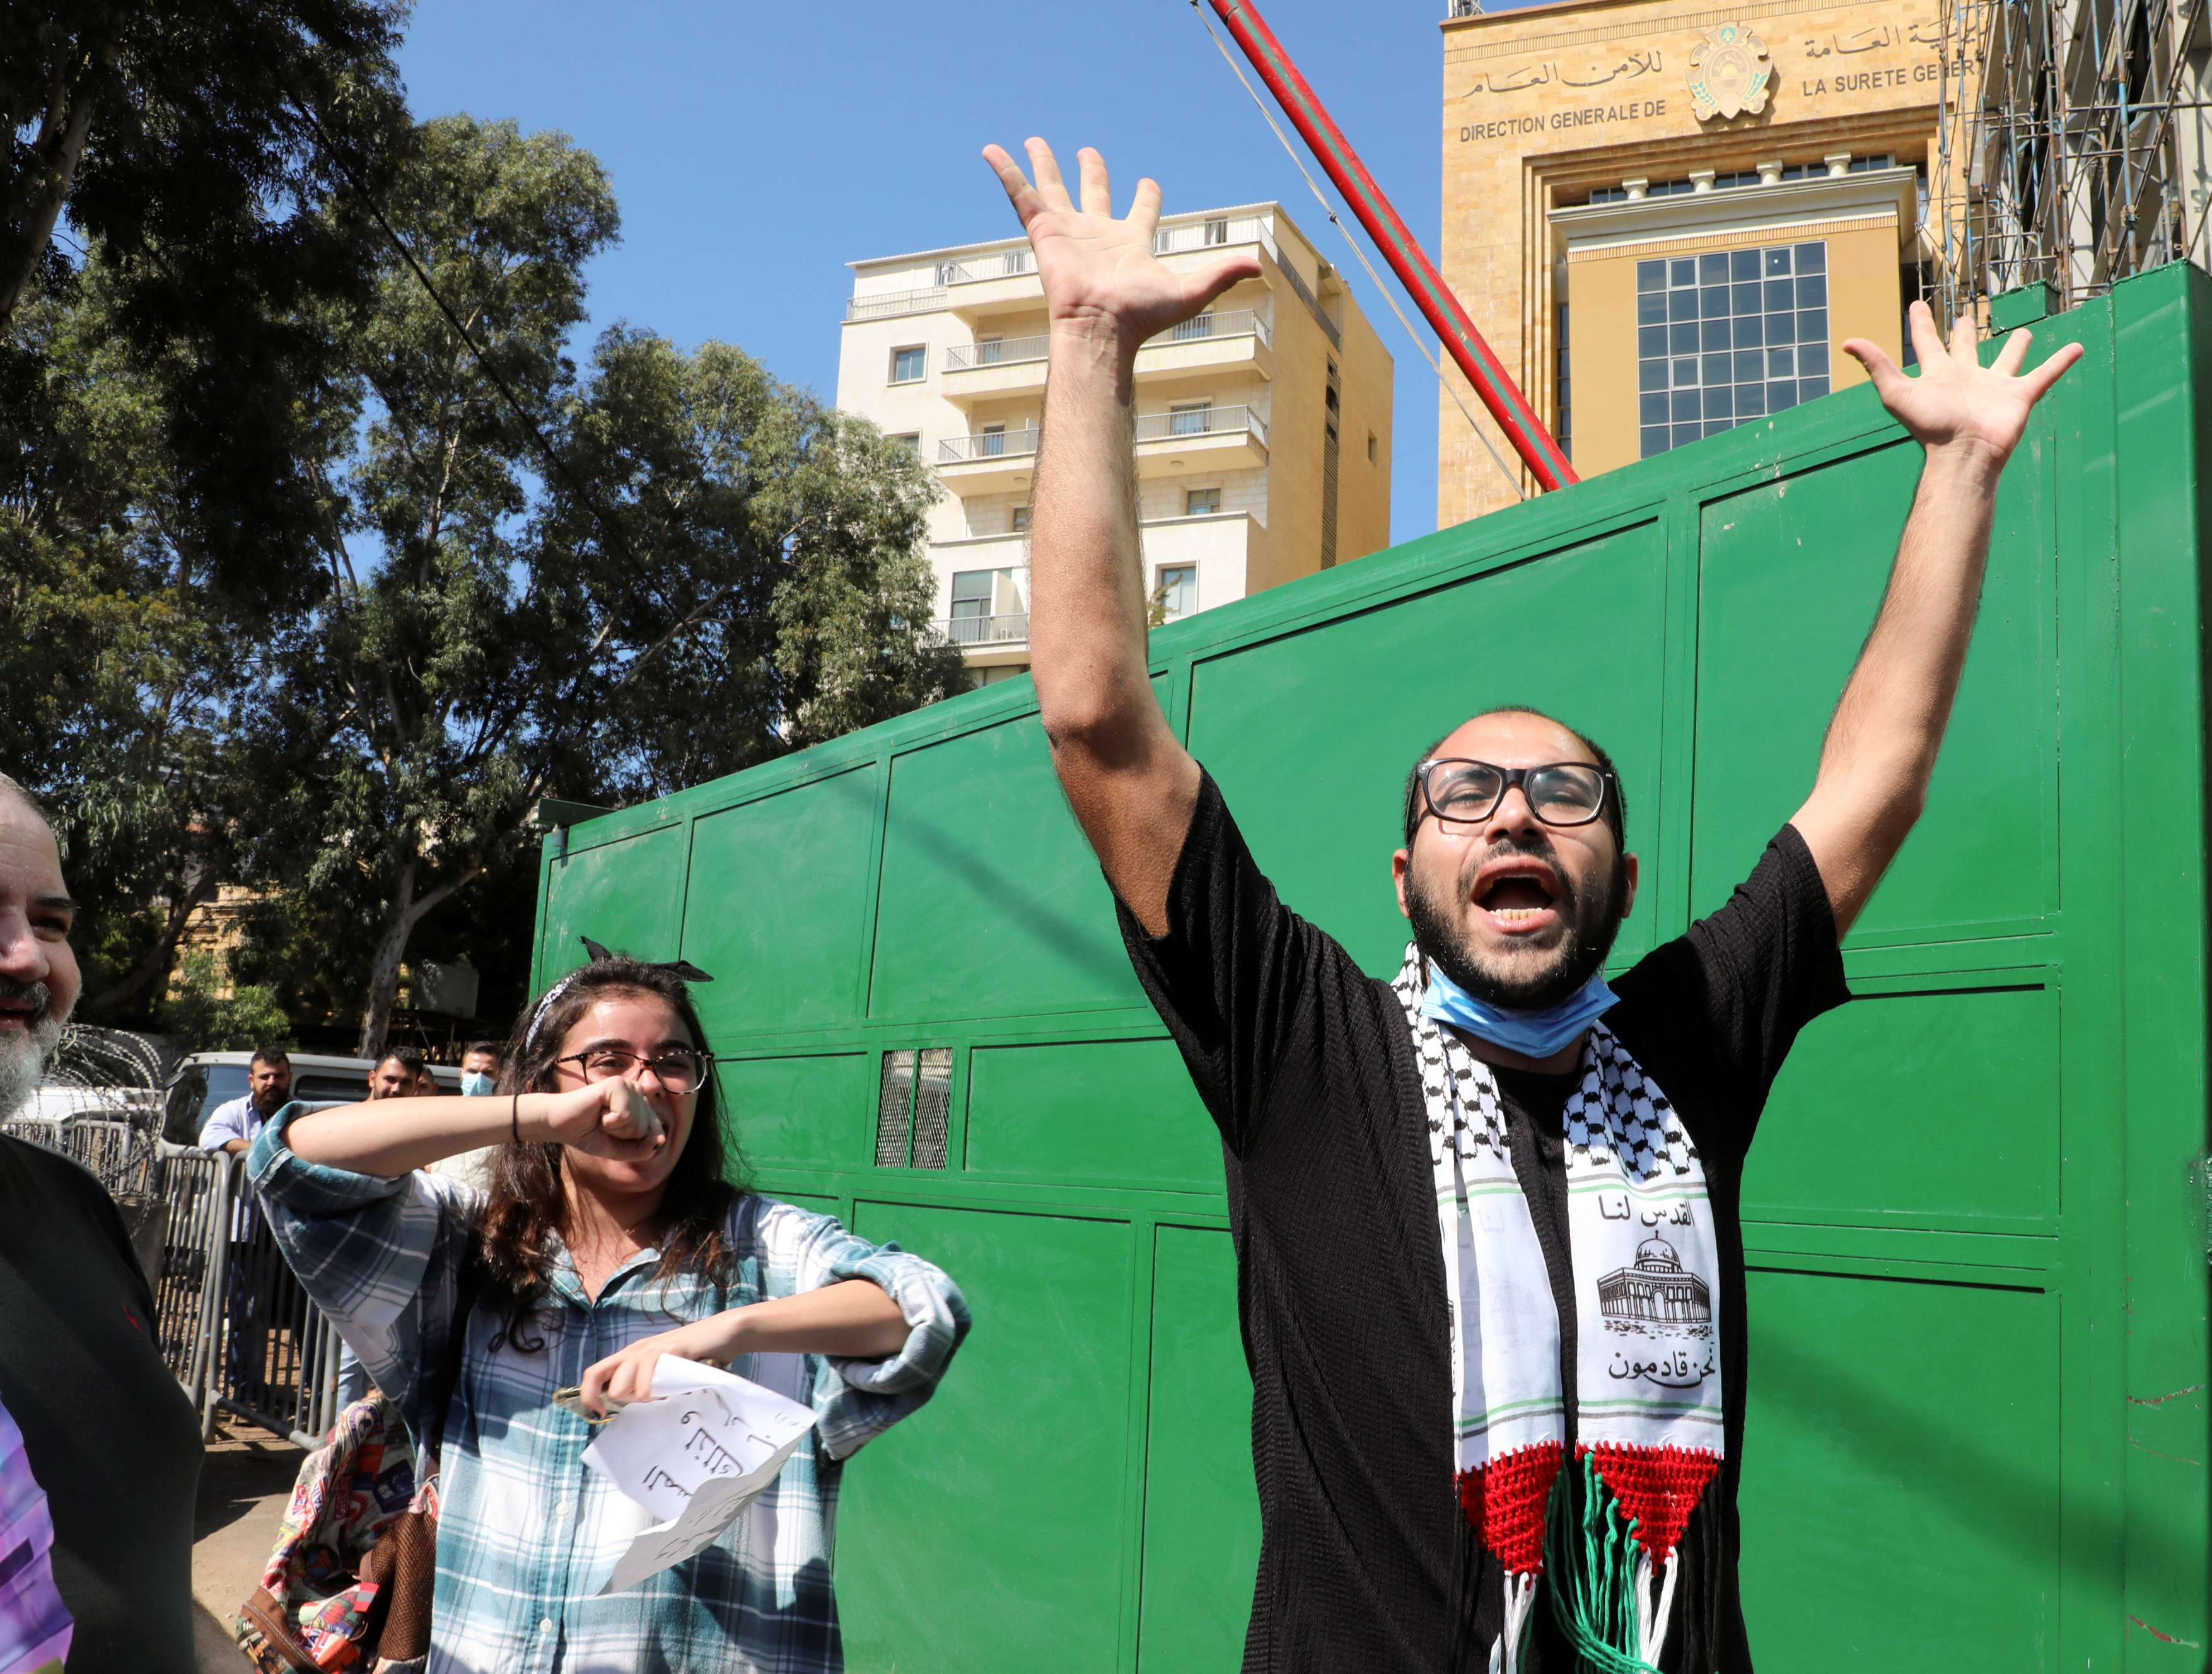 Palestinian director Awad Awad gestures as he leaves after being questioned by the Lebanese General Security, during a protest in support of his play and freedom of expression, in Beirut, Lebanon October 4, 2021. REUTERS/Mohamed Azakir